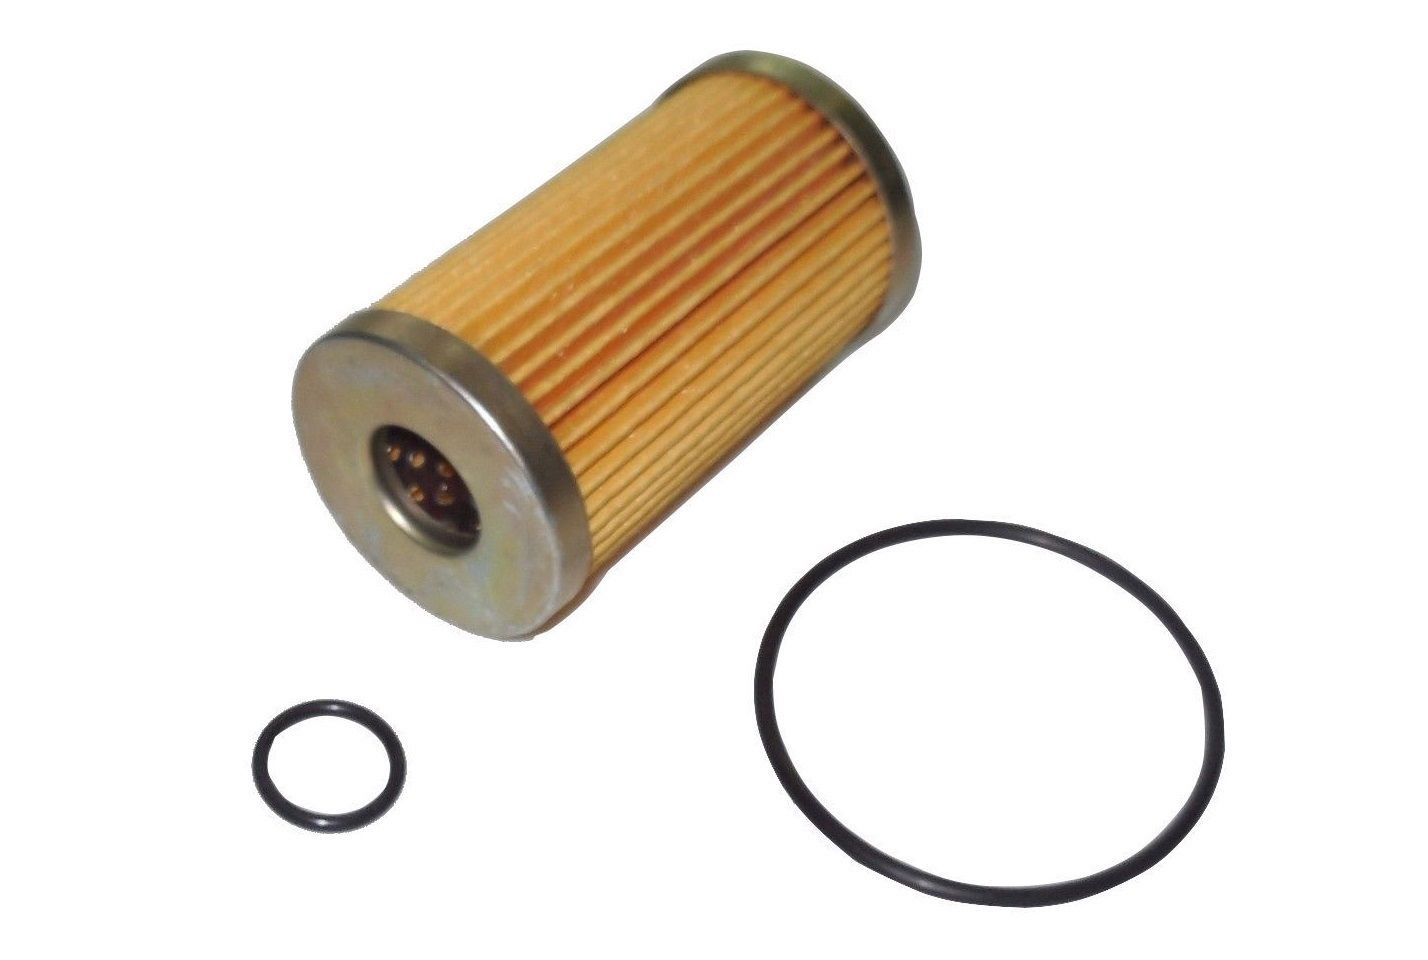 hight resolution of john deere skid steer fuel filter with o ring 4475 5575 6675